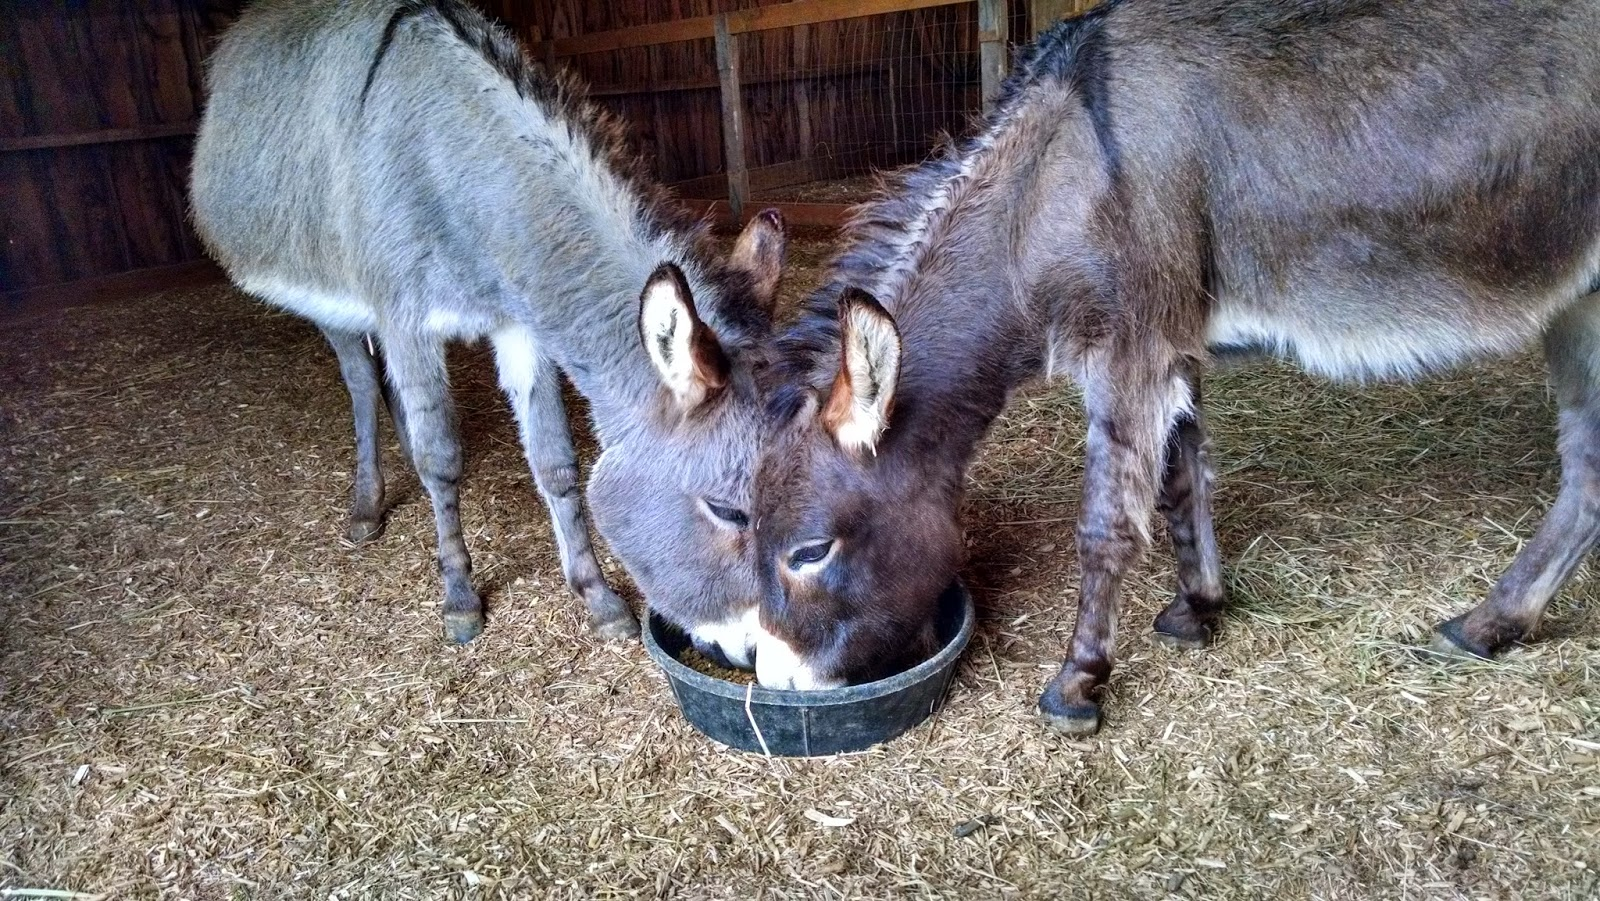 two miniature donkeys eating from a food tray